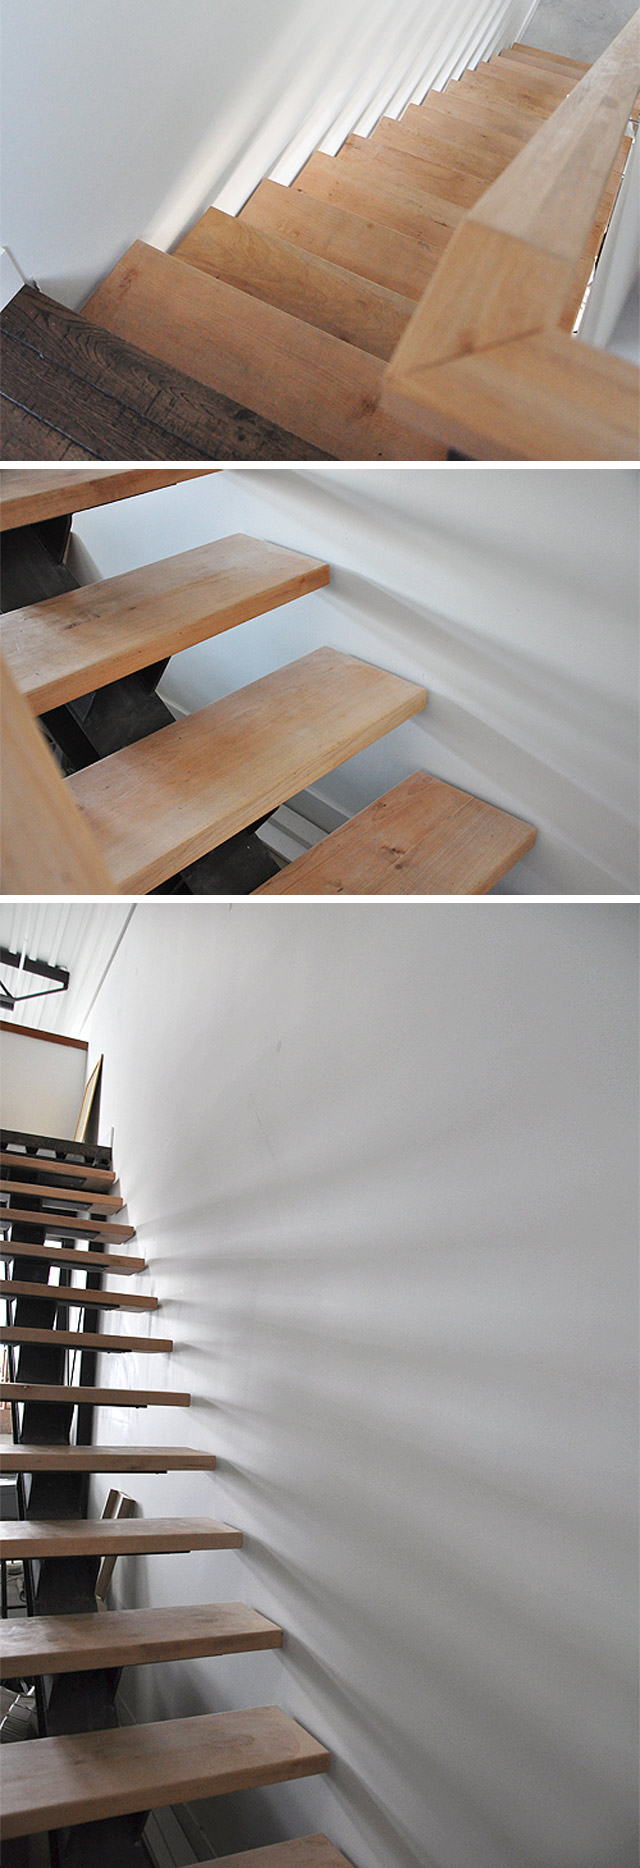 stairs-after-diy